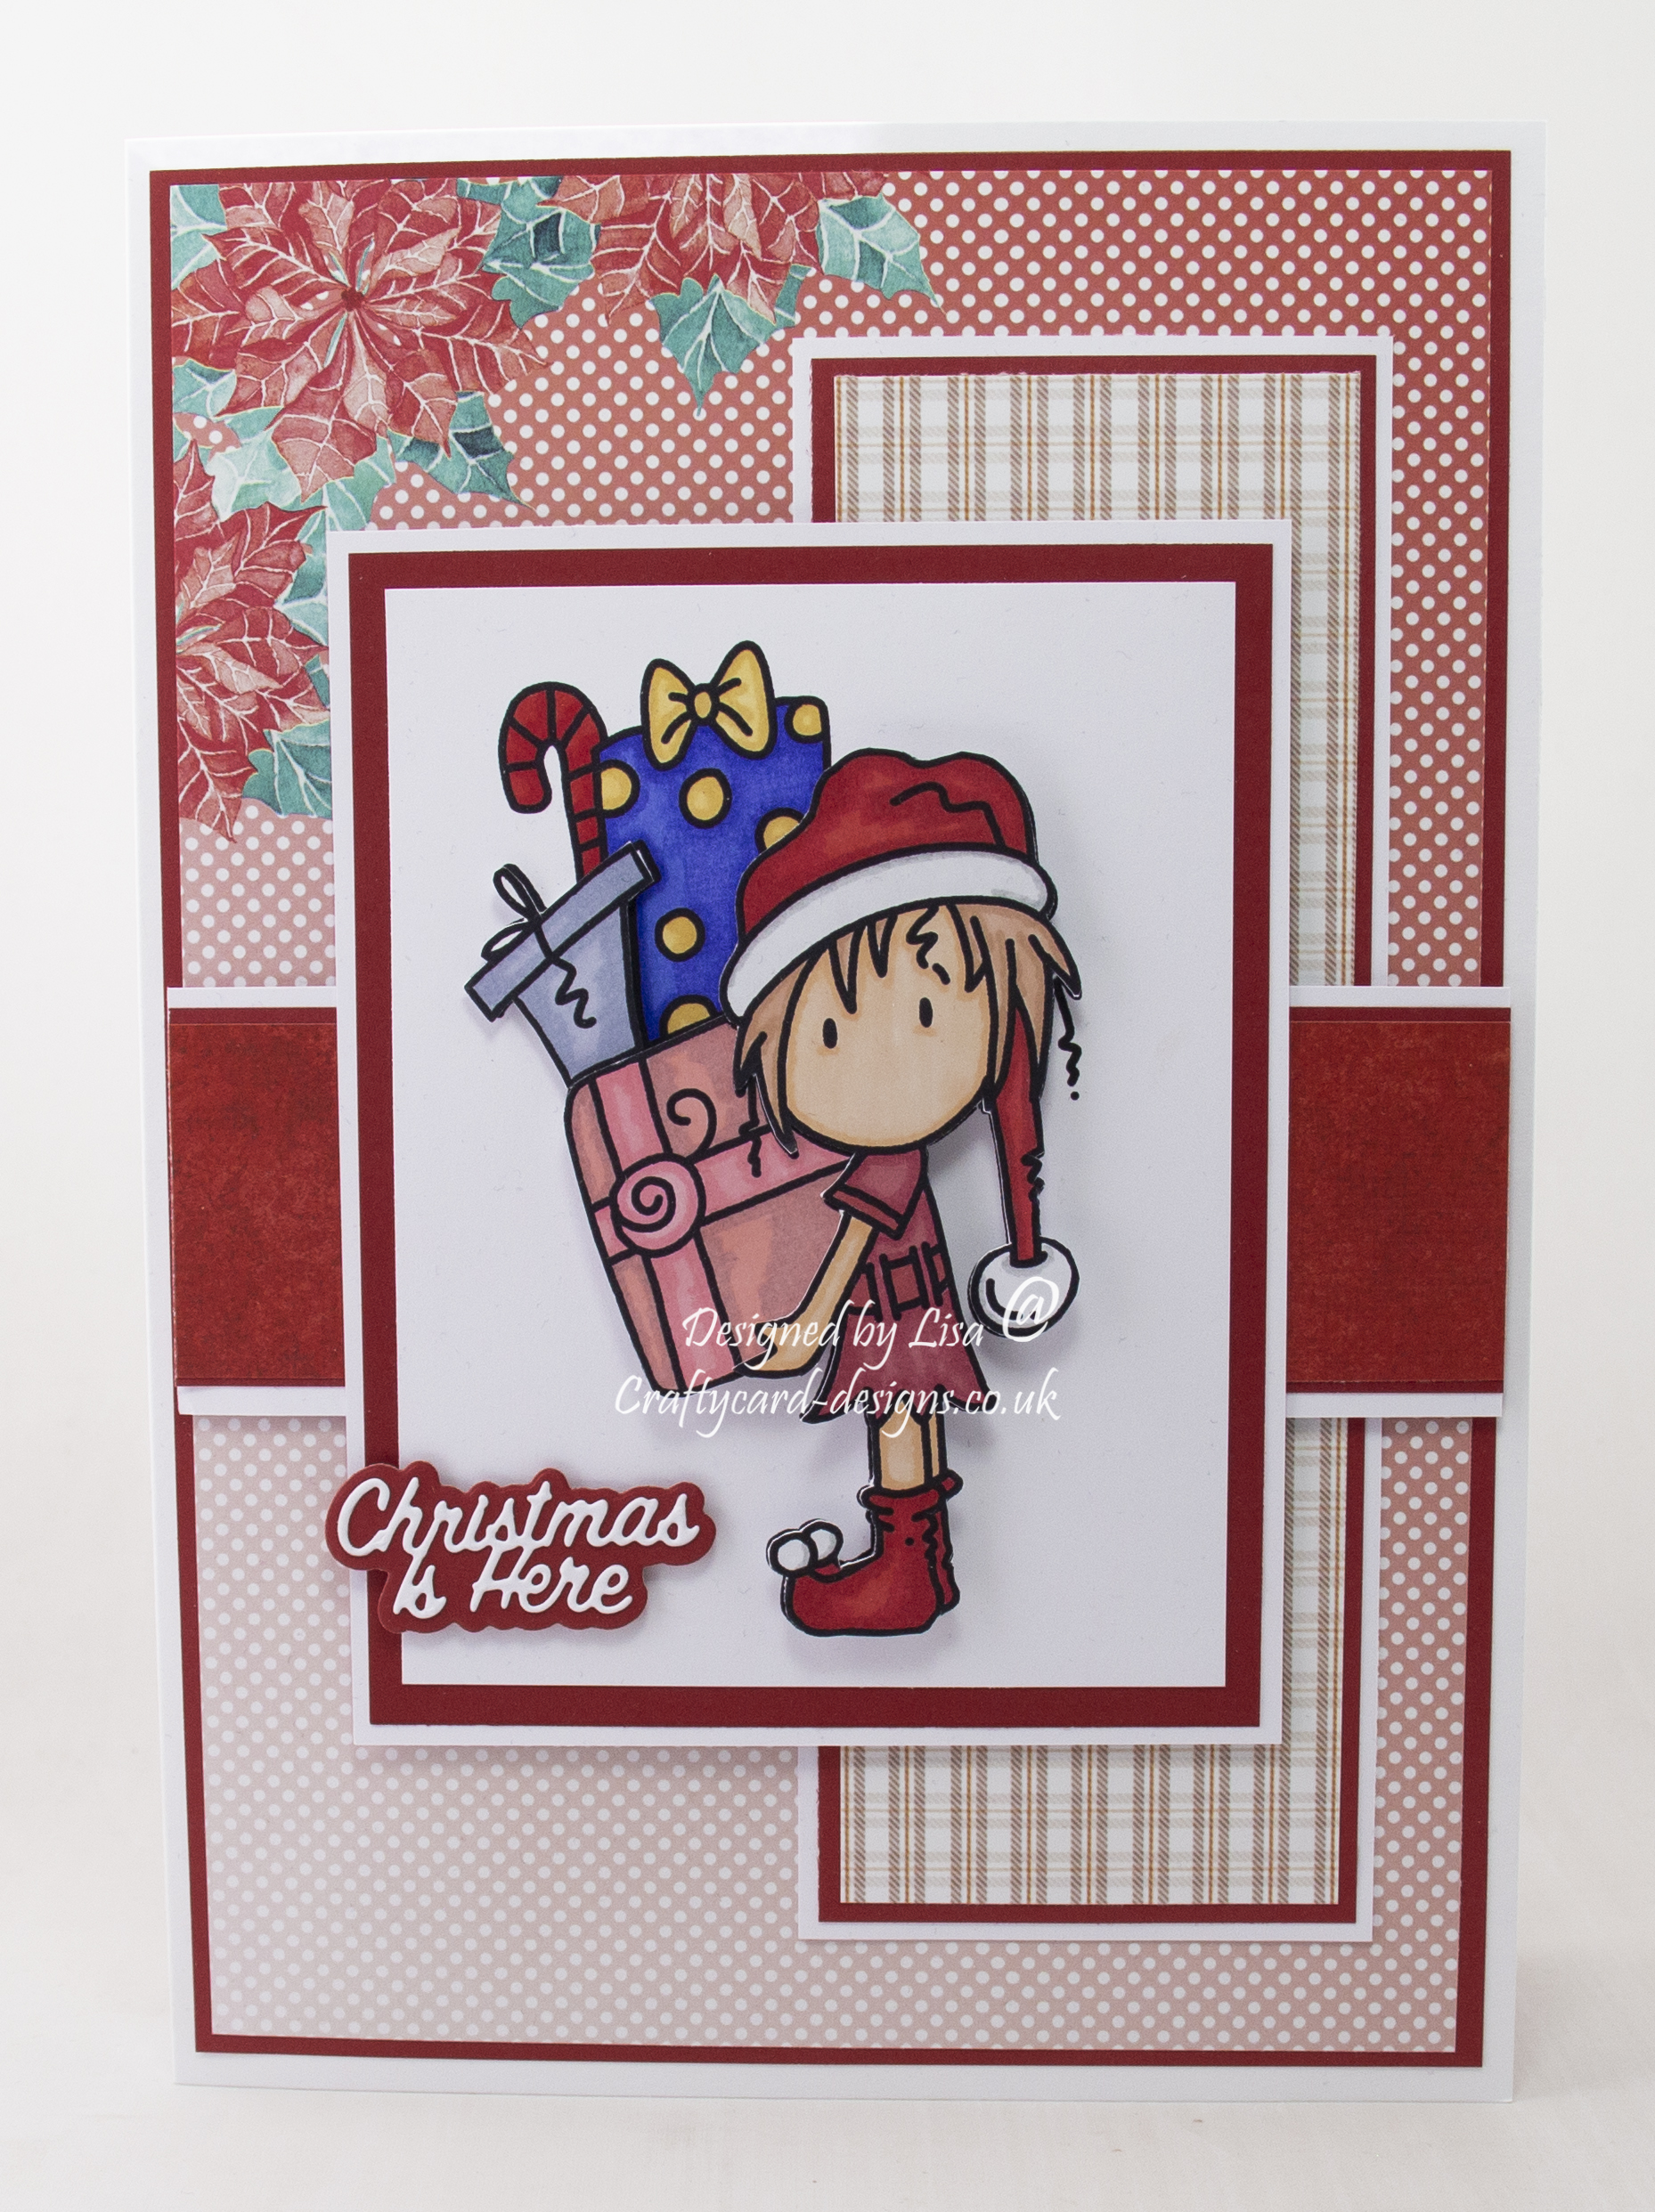 Handmade card using digi image from Bugaboo Stamps called Deacon elf presents